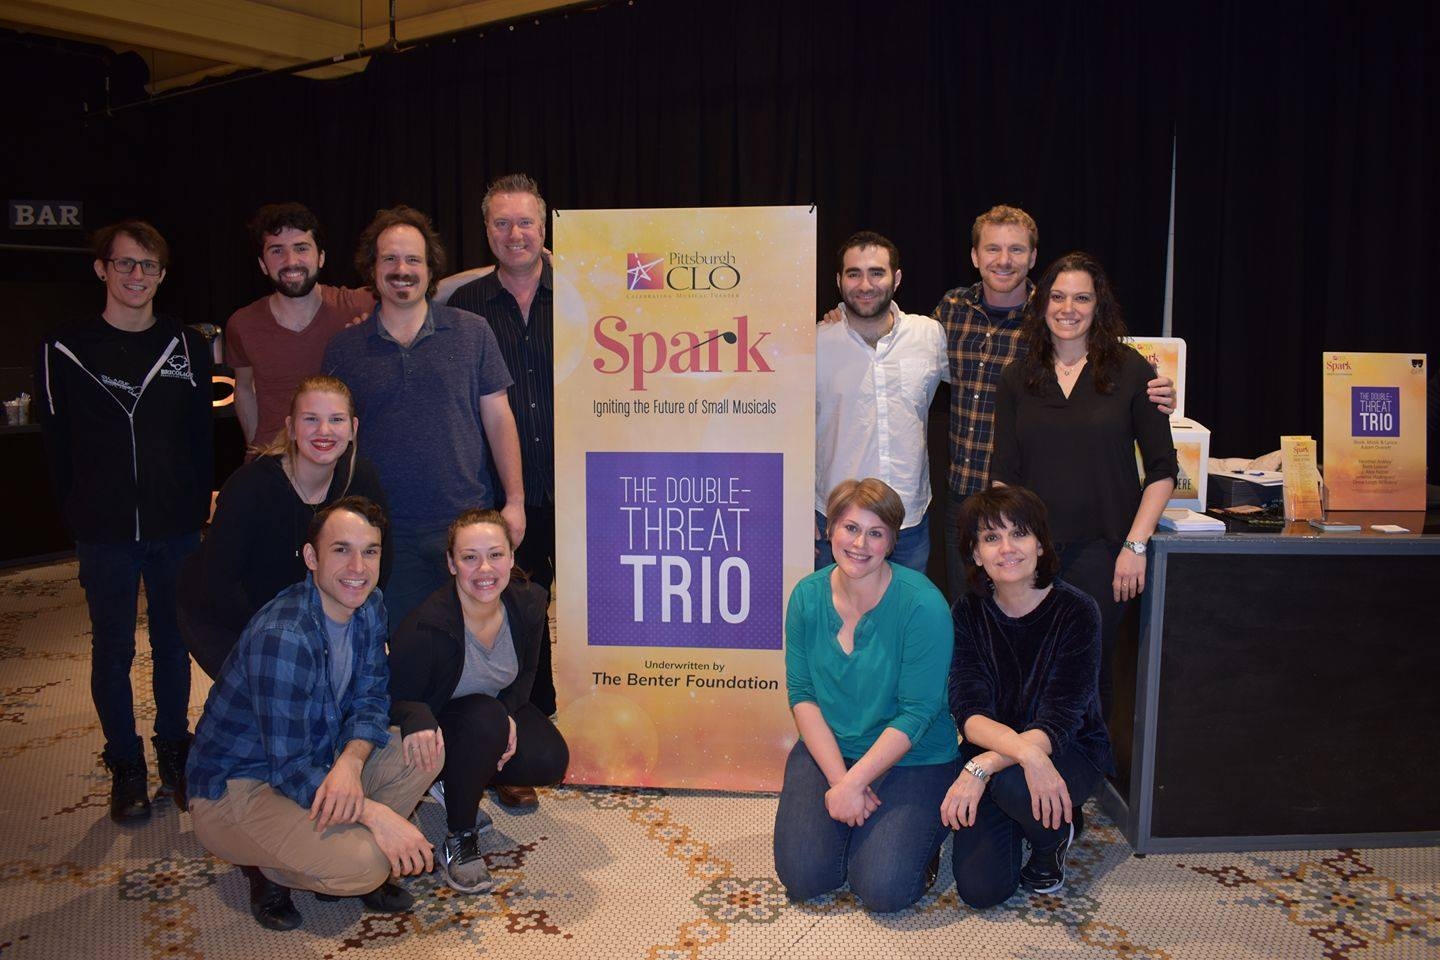 MAR 19 – APR 7, 2018 – Tony winner Beth Leavel joins THE DOUBLE-THREAT TRIO staged workshop at Pittsburgh CLO's Spark Festival!